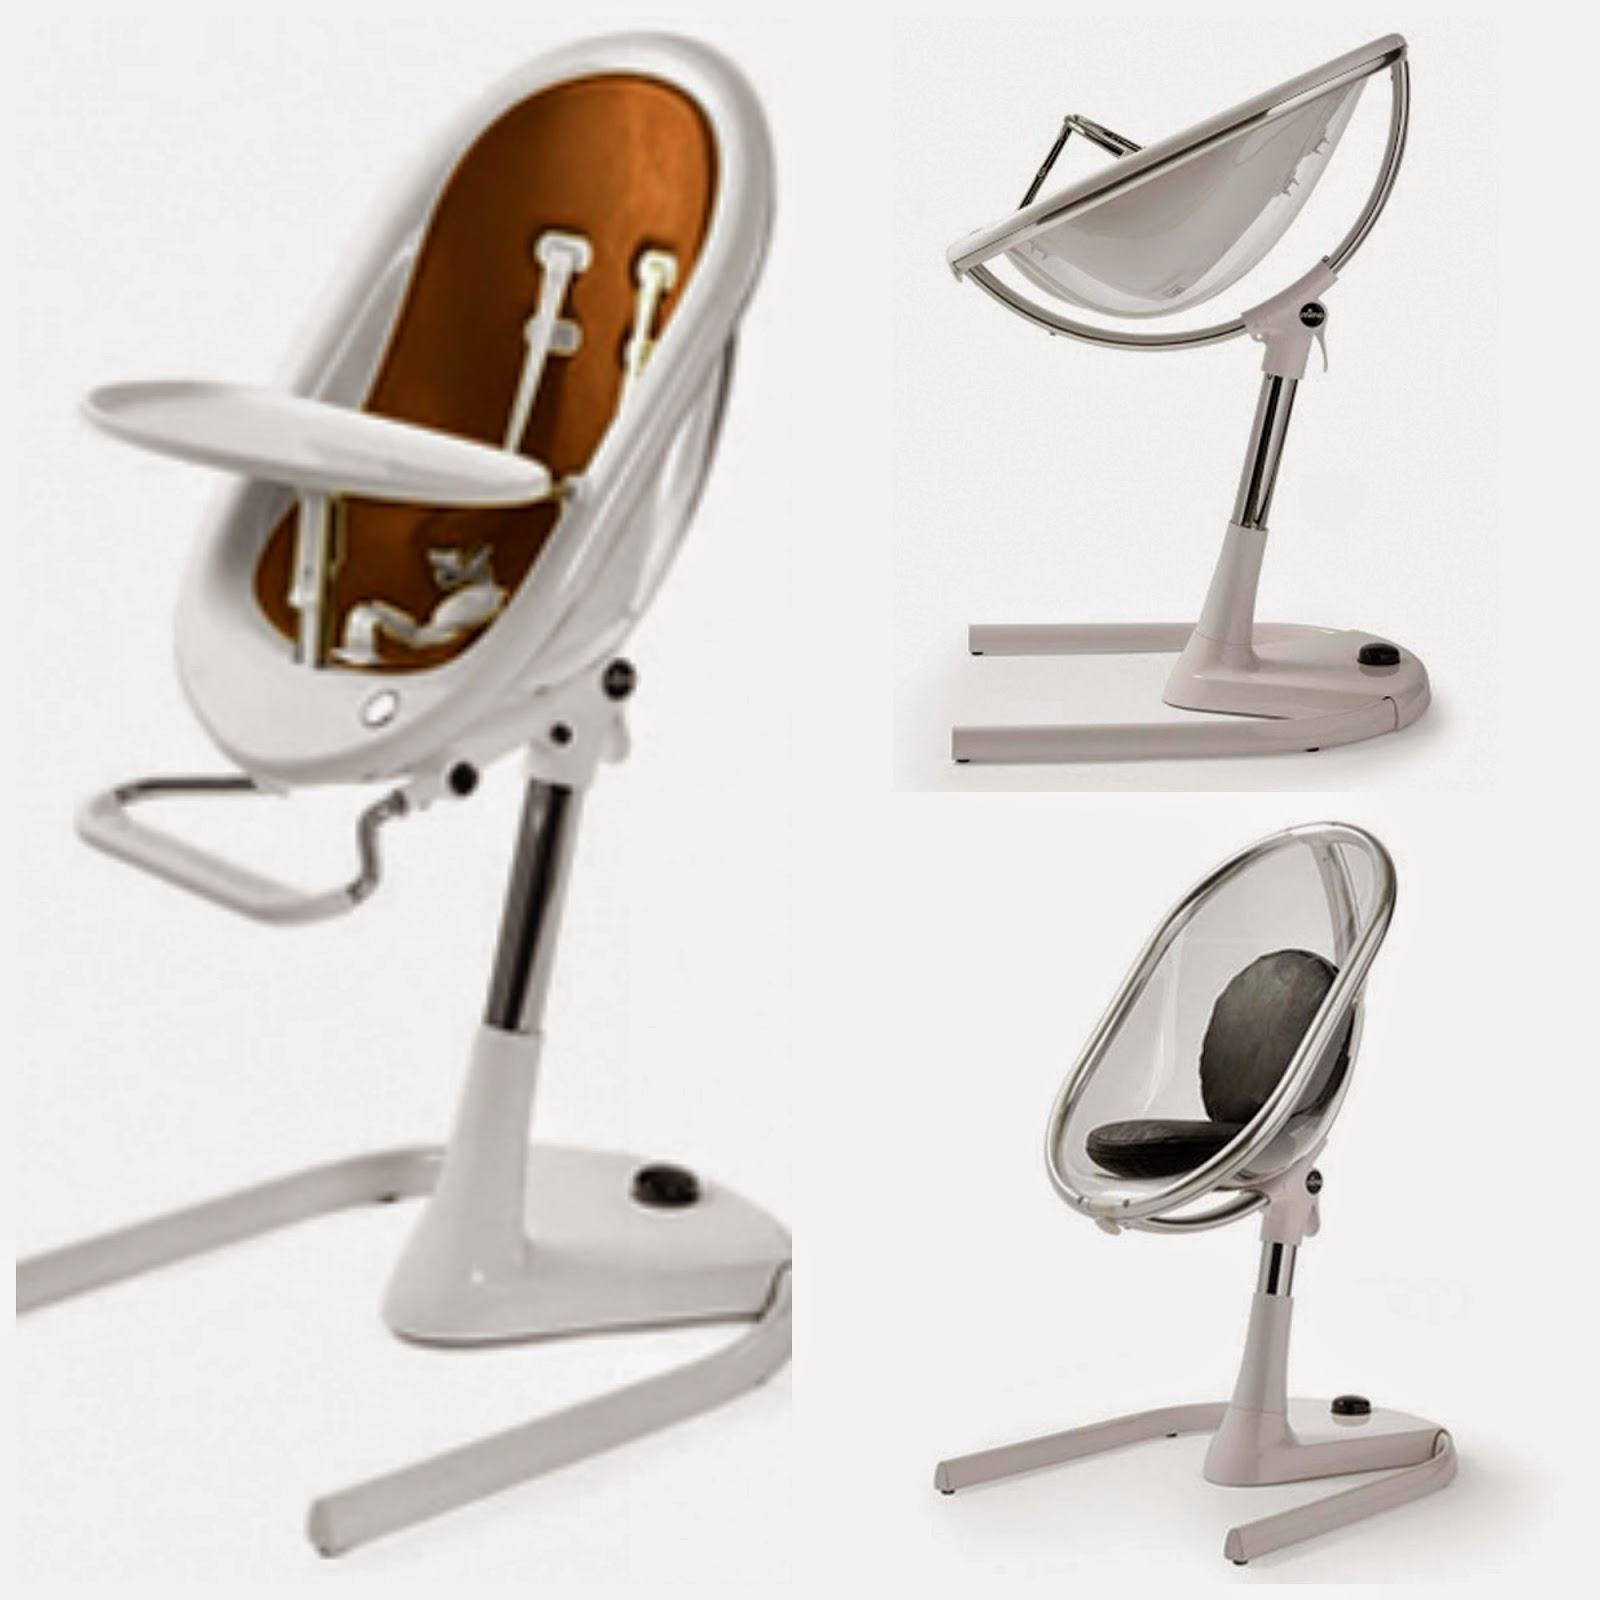 Mima Moon High Chair Trendy Kiddos Blog Mima Moon High Chair